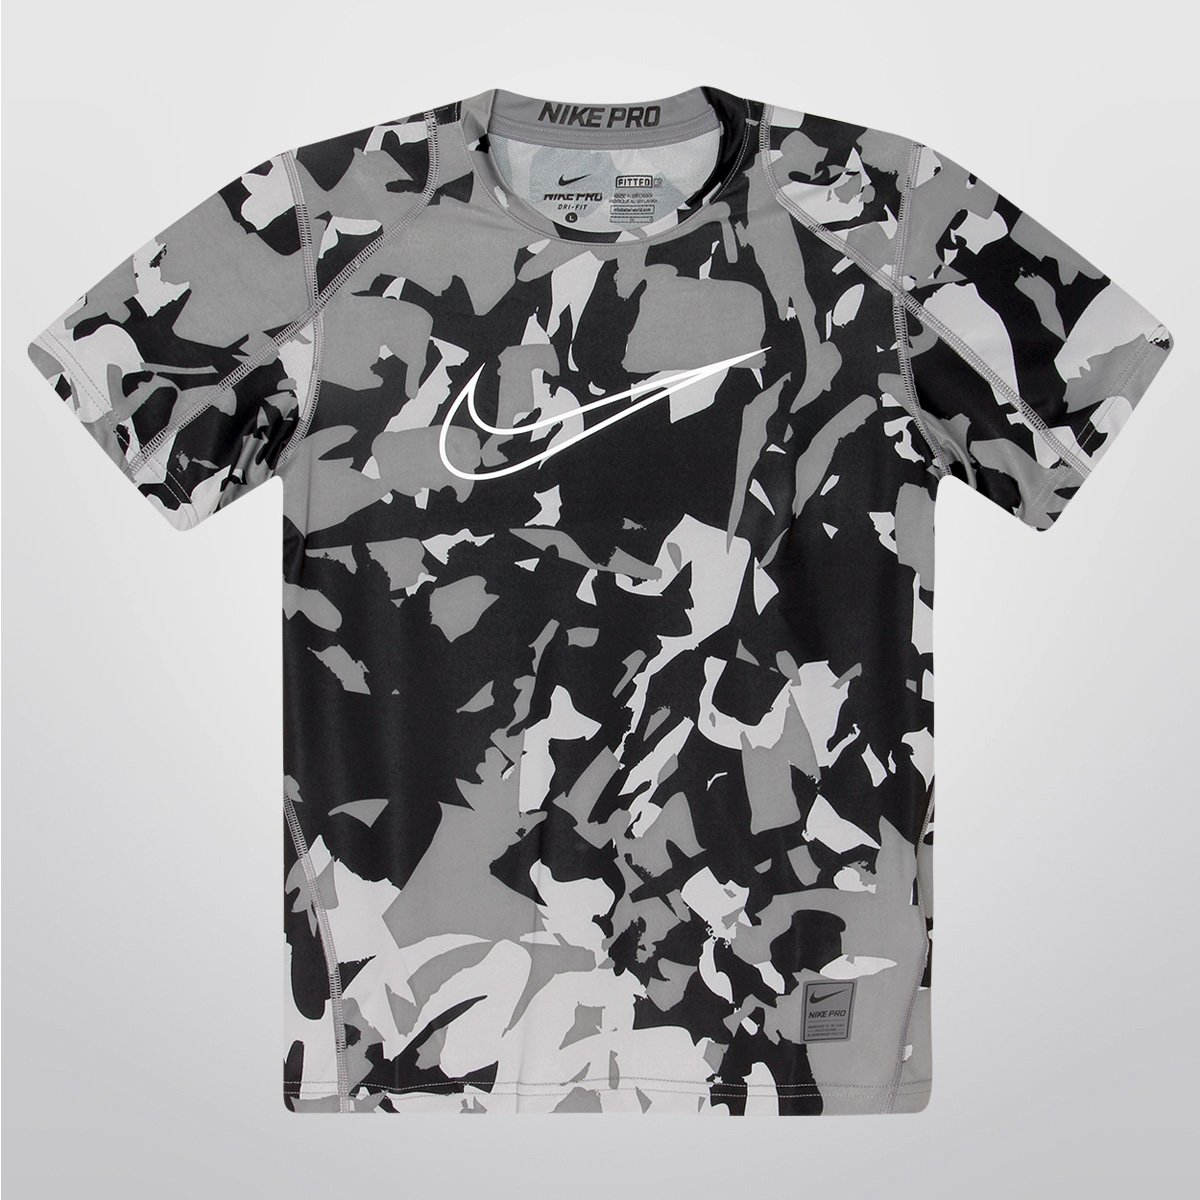 8605774bd9ffa Camiseta Nike Cool Aop Fitted Ss Infantil - Compre Agora